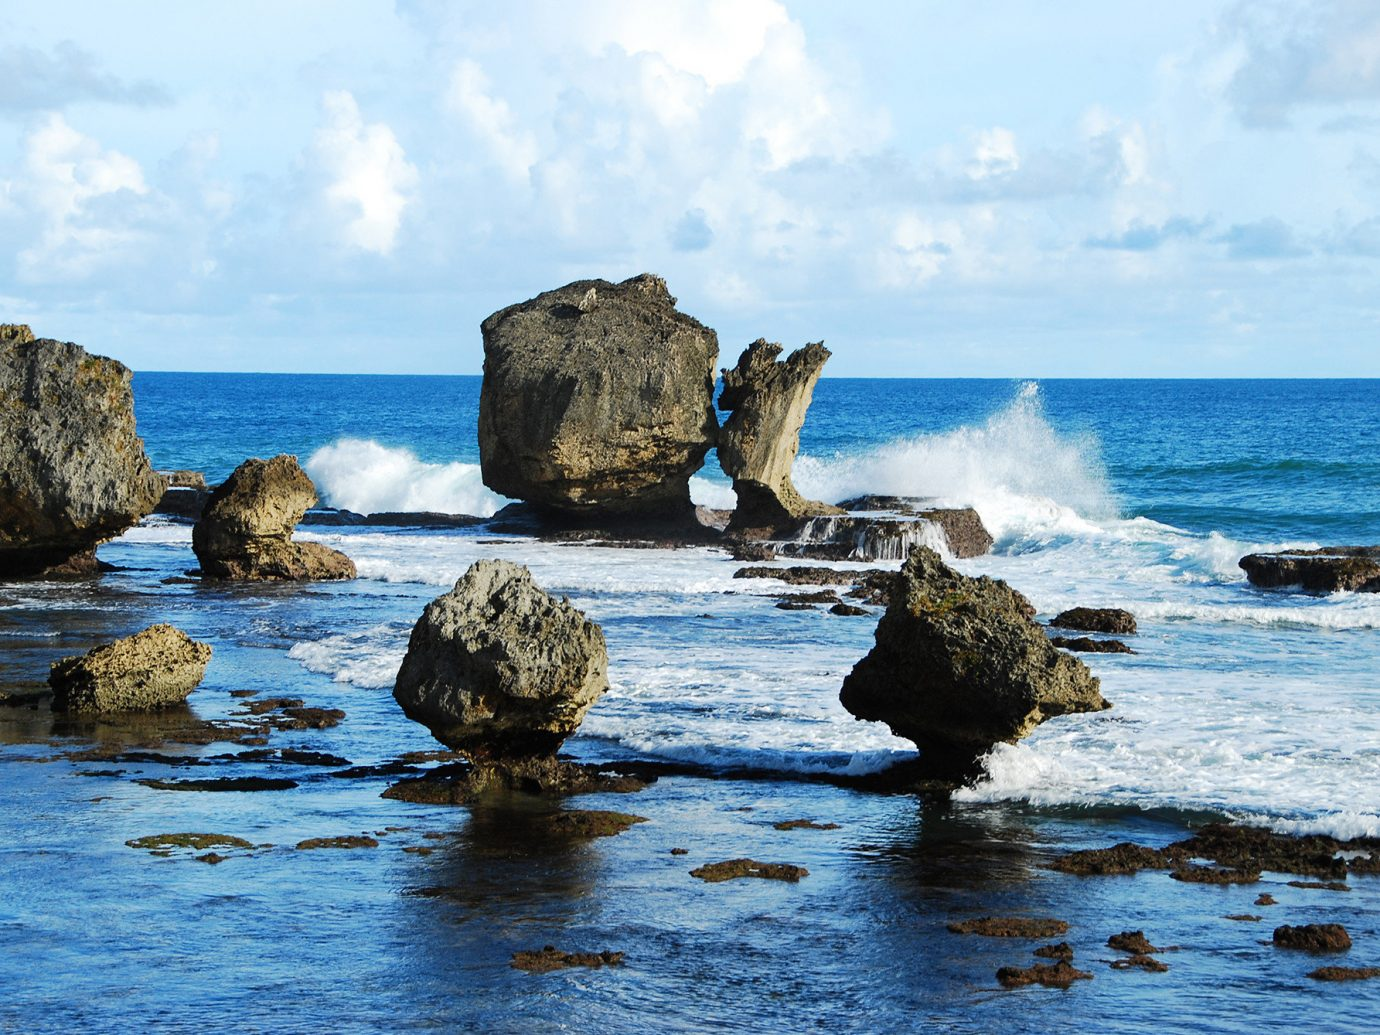 Trip Ideas water rock outdoor Sea shore Nature Coast Ocean body of water Beach wave vacation reflection bay cape islet cliff terrain material stack cove